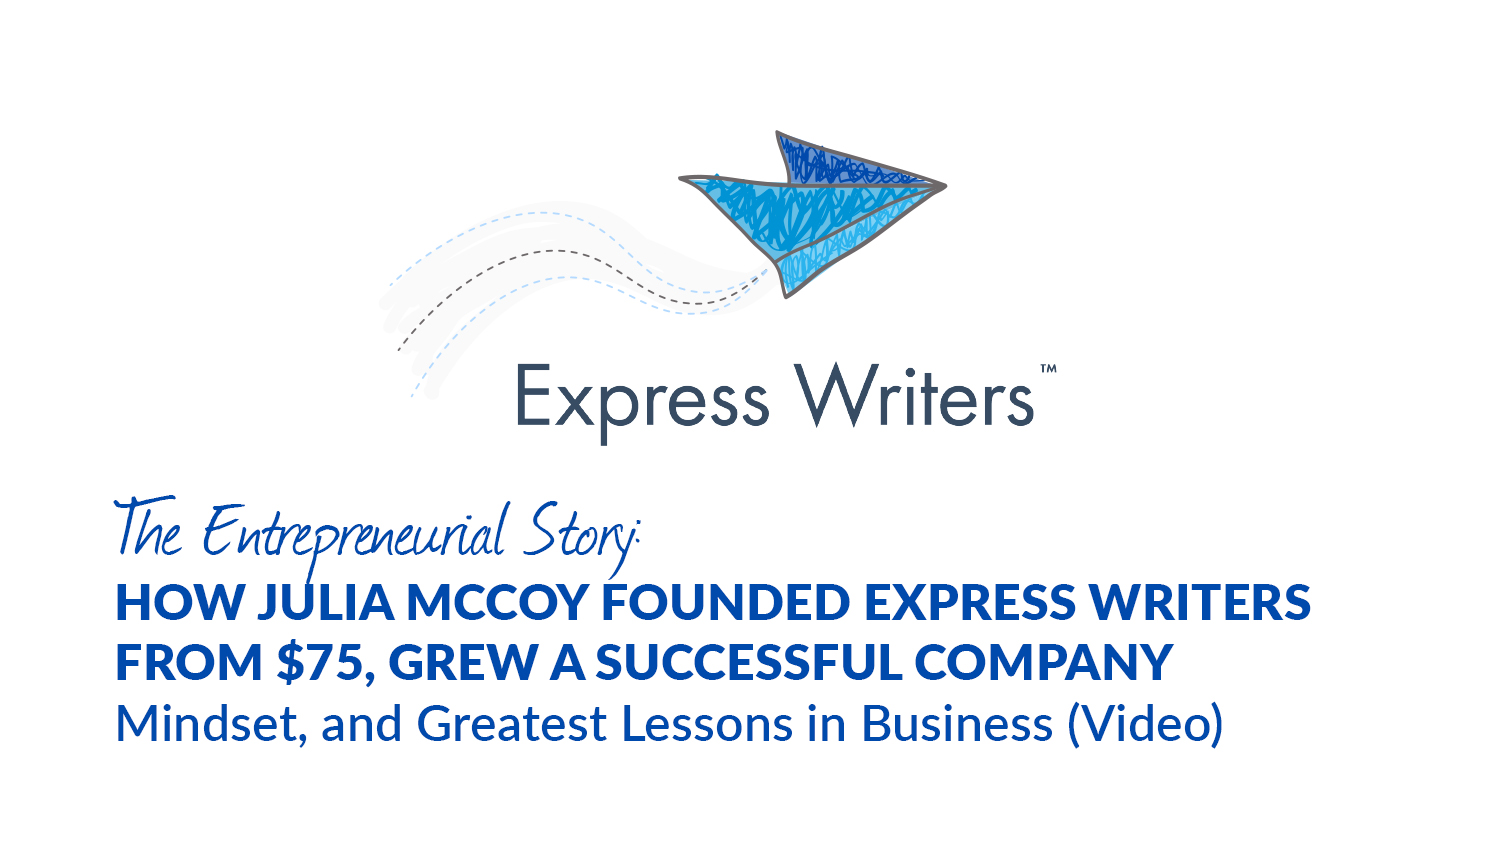 express writers launch story